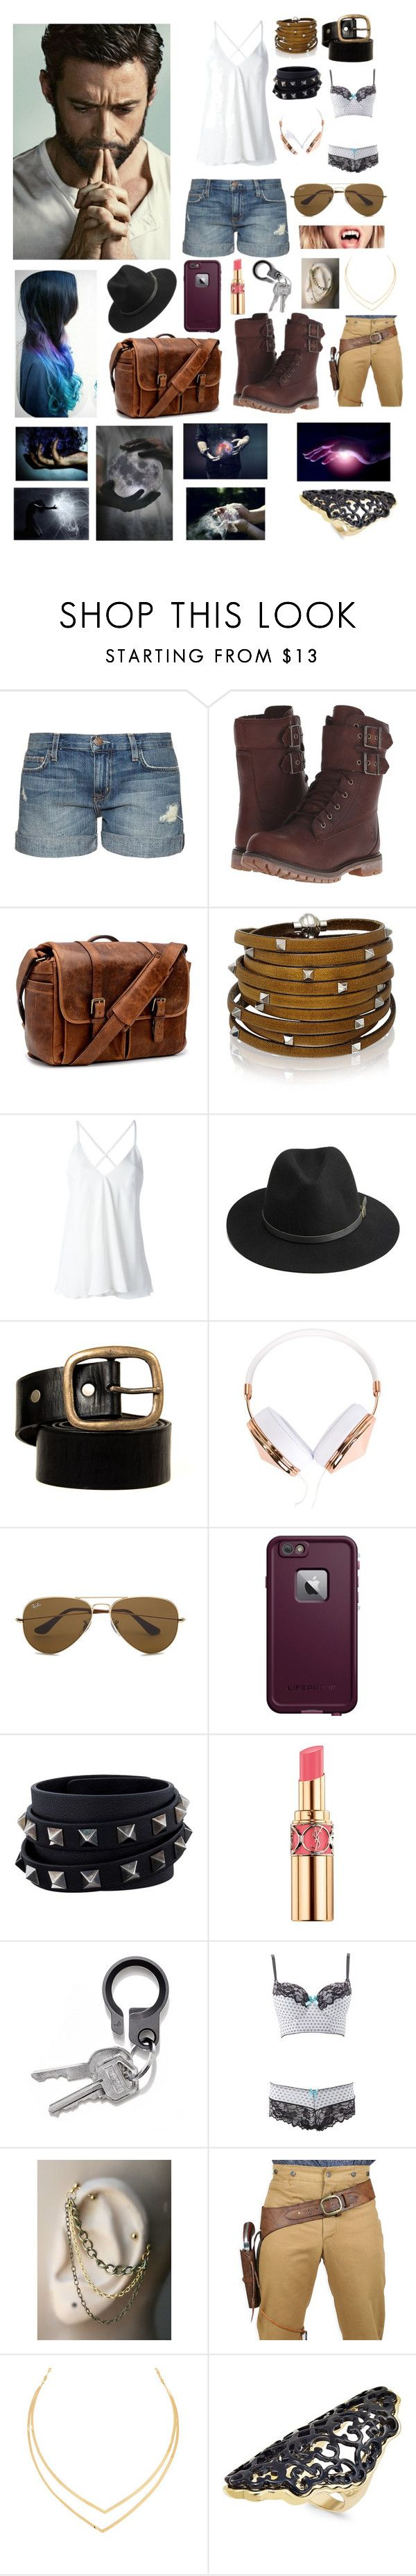 """""""Mr & Mrs howlett"""" by evil-fangirl-overlord ❤ liked on Polyvore featuring Wolverine, Current/Elliott, Timberland, Brixton, Sif Jakobs Jewellery, Dondup, BeckSöndergaard, Frends, Ray-Ban and LifeProof"""